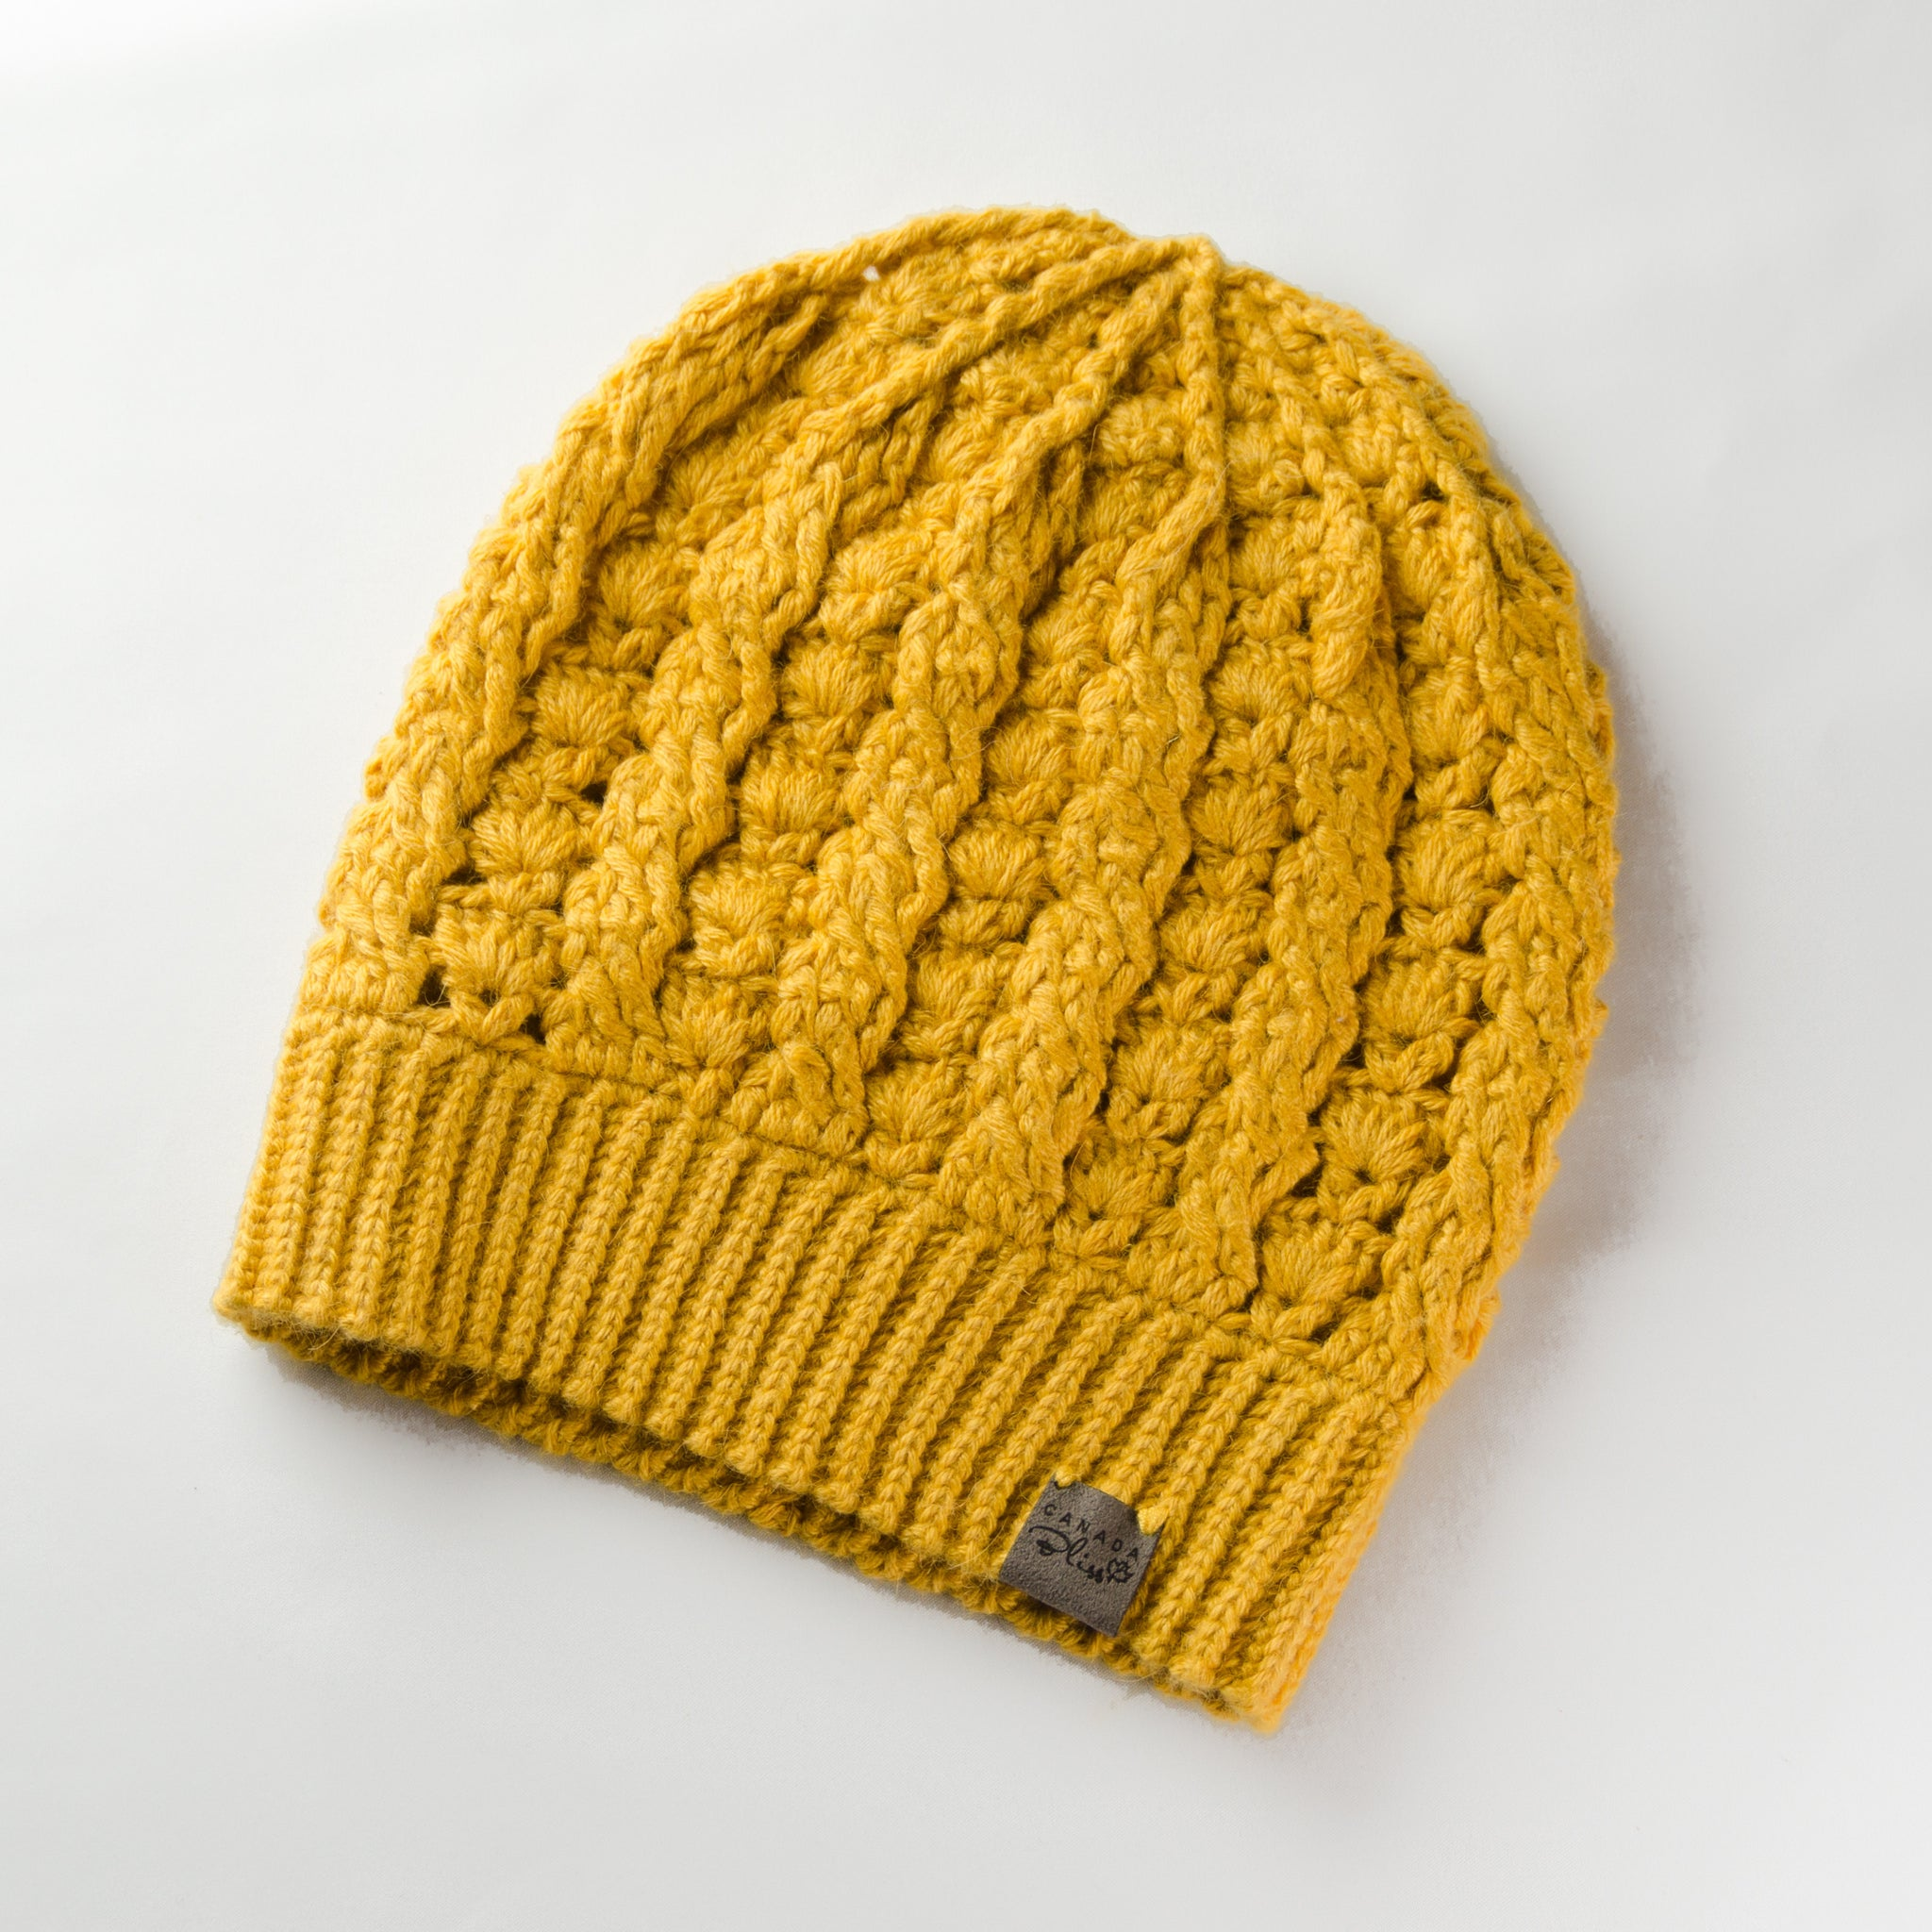 Yellow Dreams Pom Pom Hat Baby Alpaca Crochet Knit Hat Canada Bliss Hot  Accessories Celebrity Fashion 3f32722d452